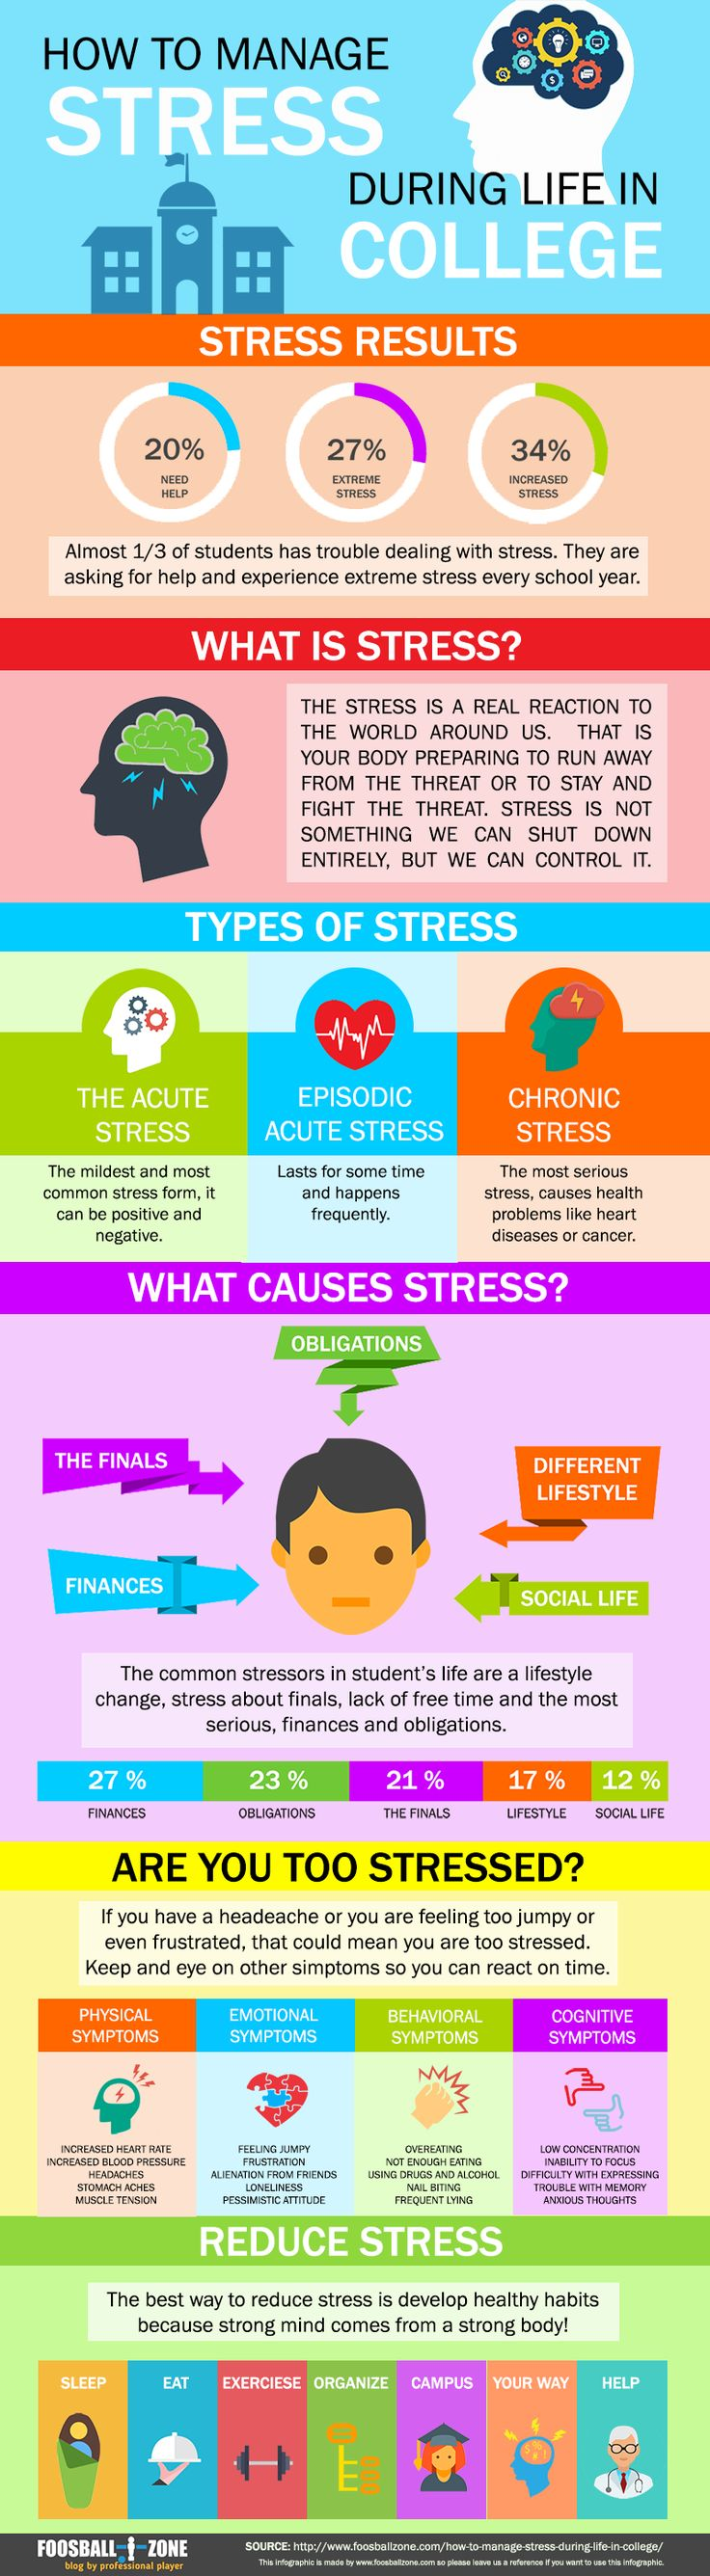 How to manage stress during life in college // follow us for daily inspiration and study motivation! @motivation2study